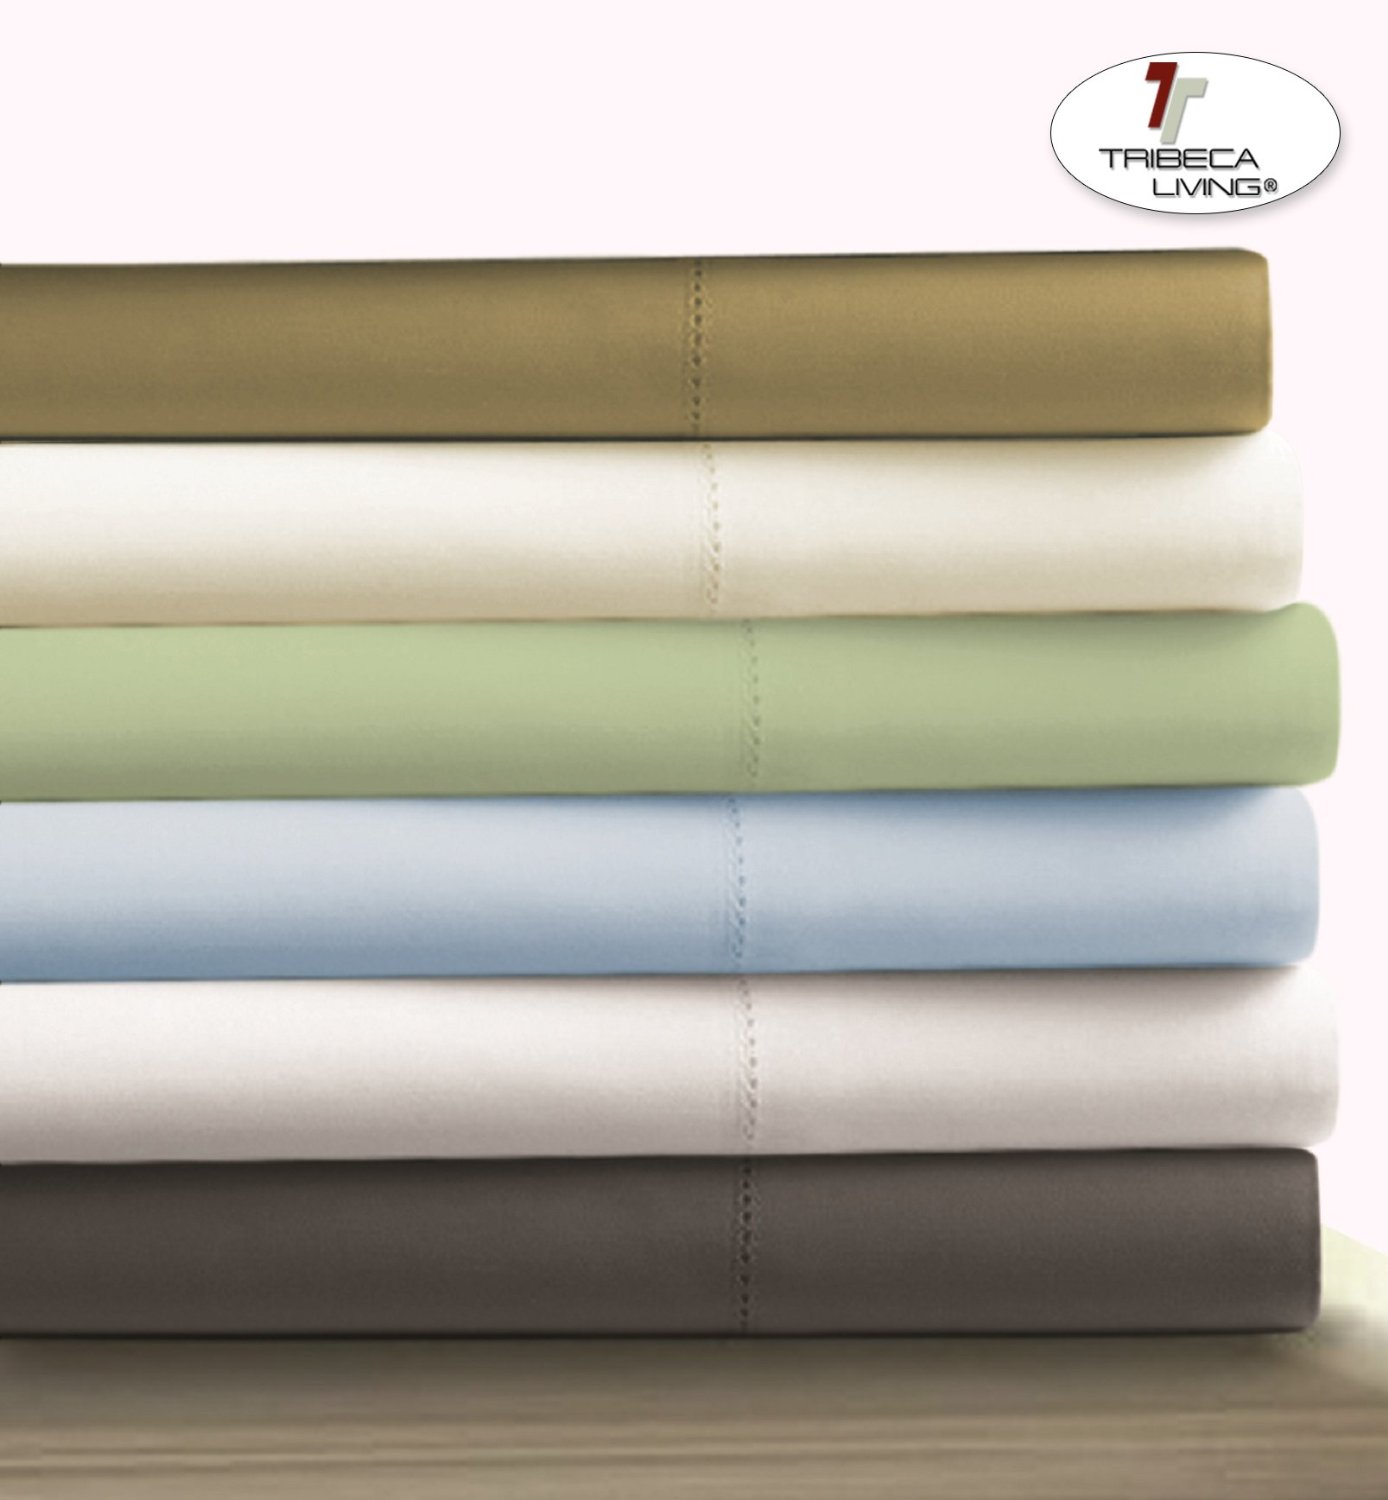 Tribeca ec sheets the bedding guide for Best egyptian cotton bed sheets